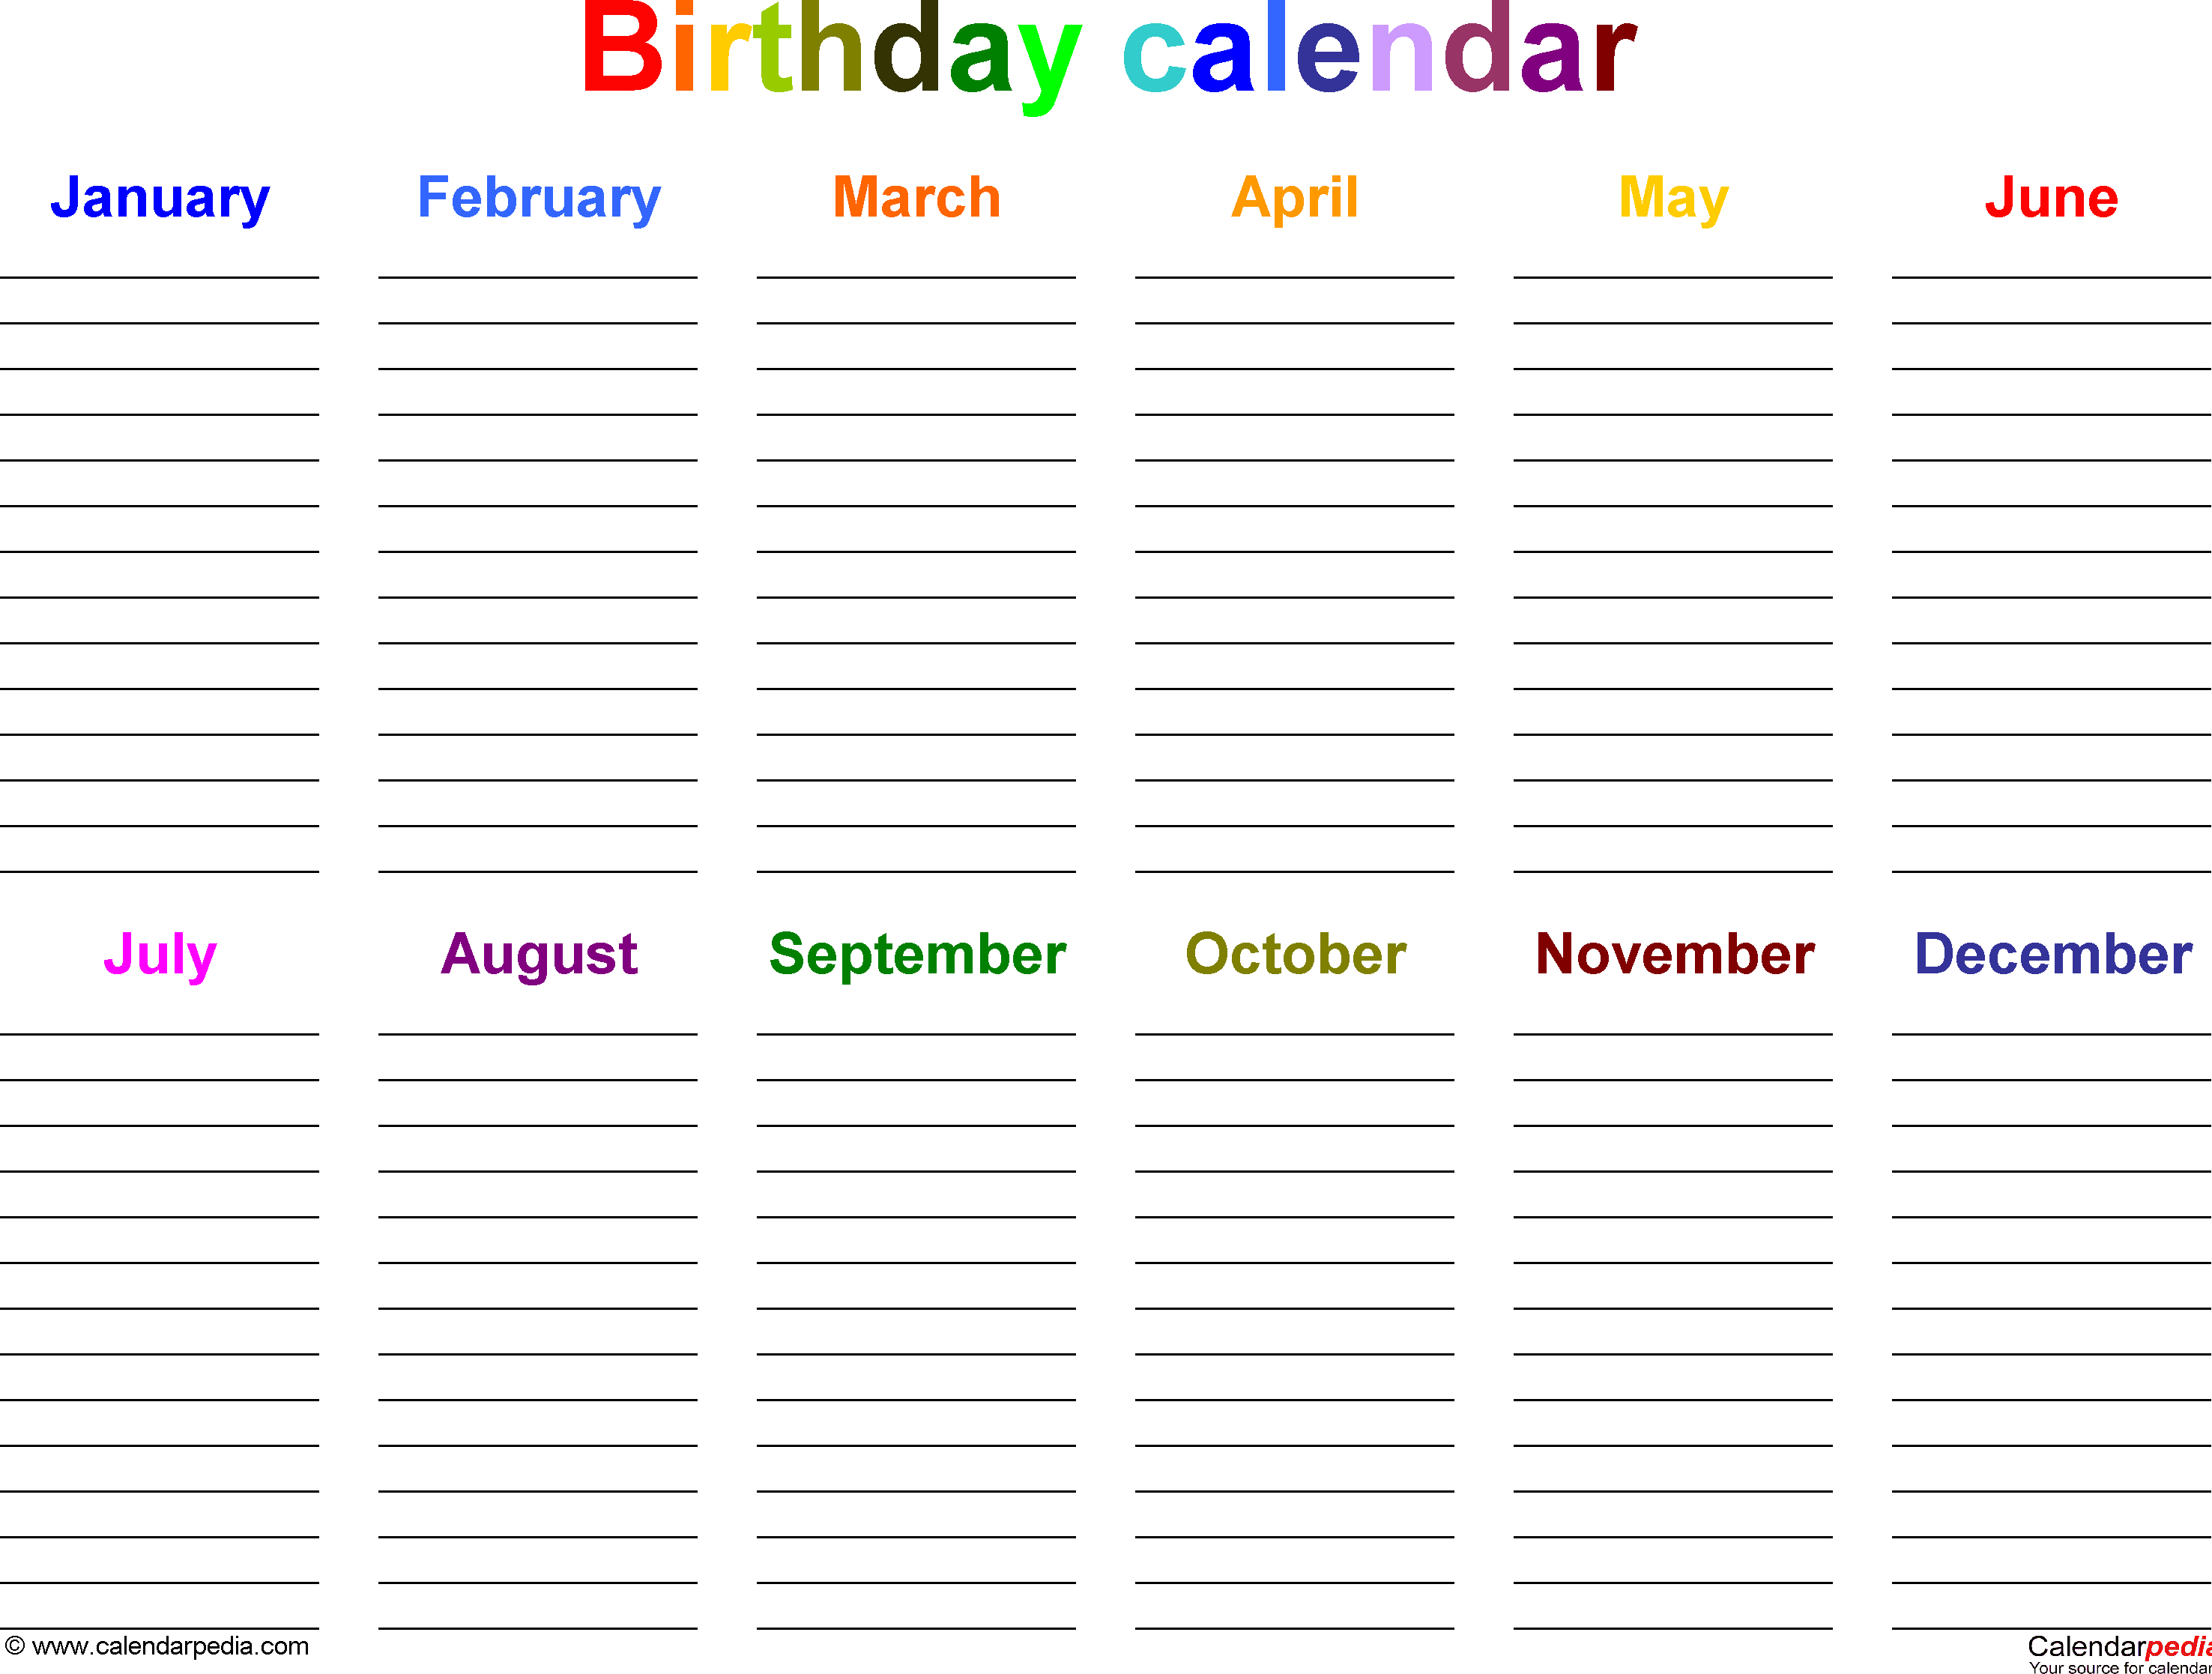 Excel Template For Birthday Calendar In Color (Landscape Orientation regarding New Employee Orientation Template With Calendar